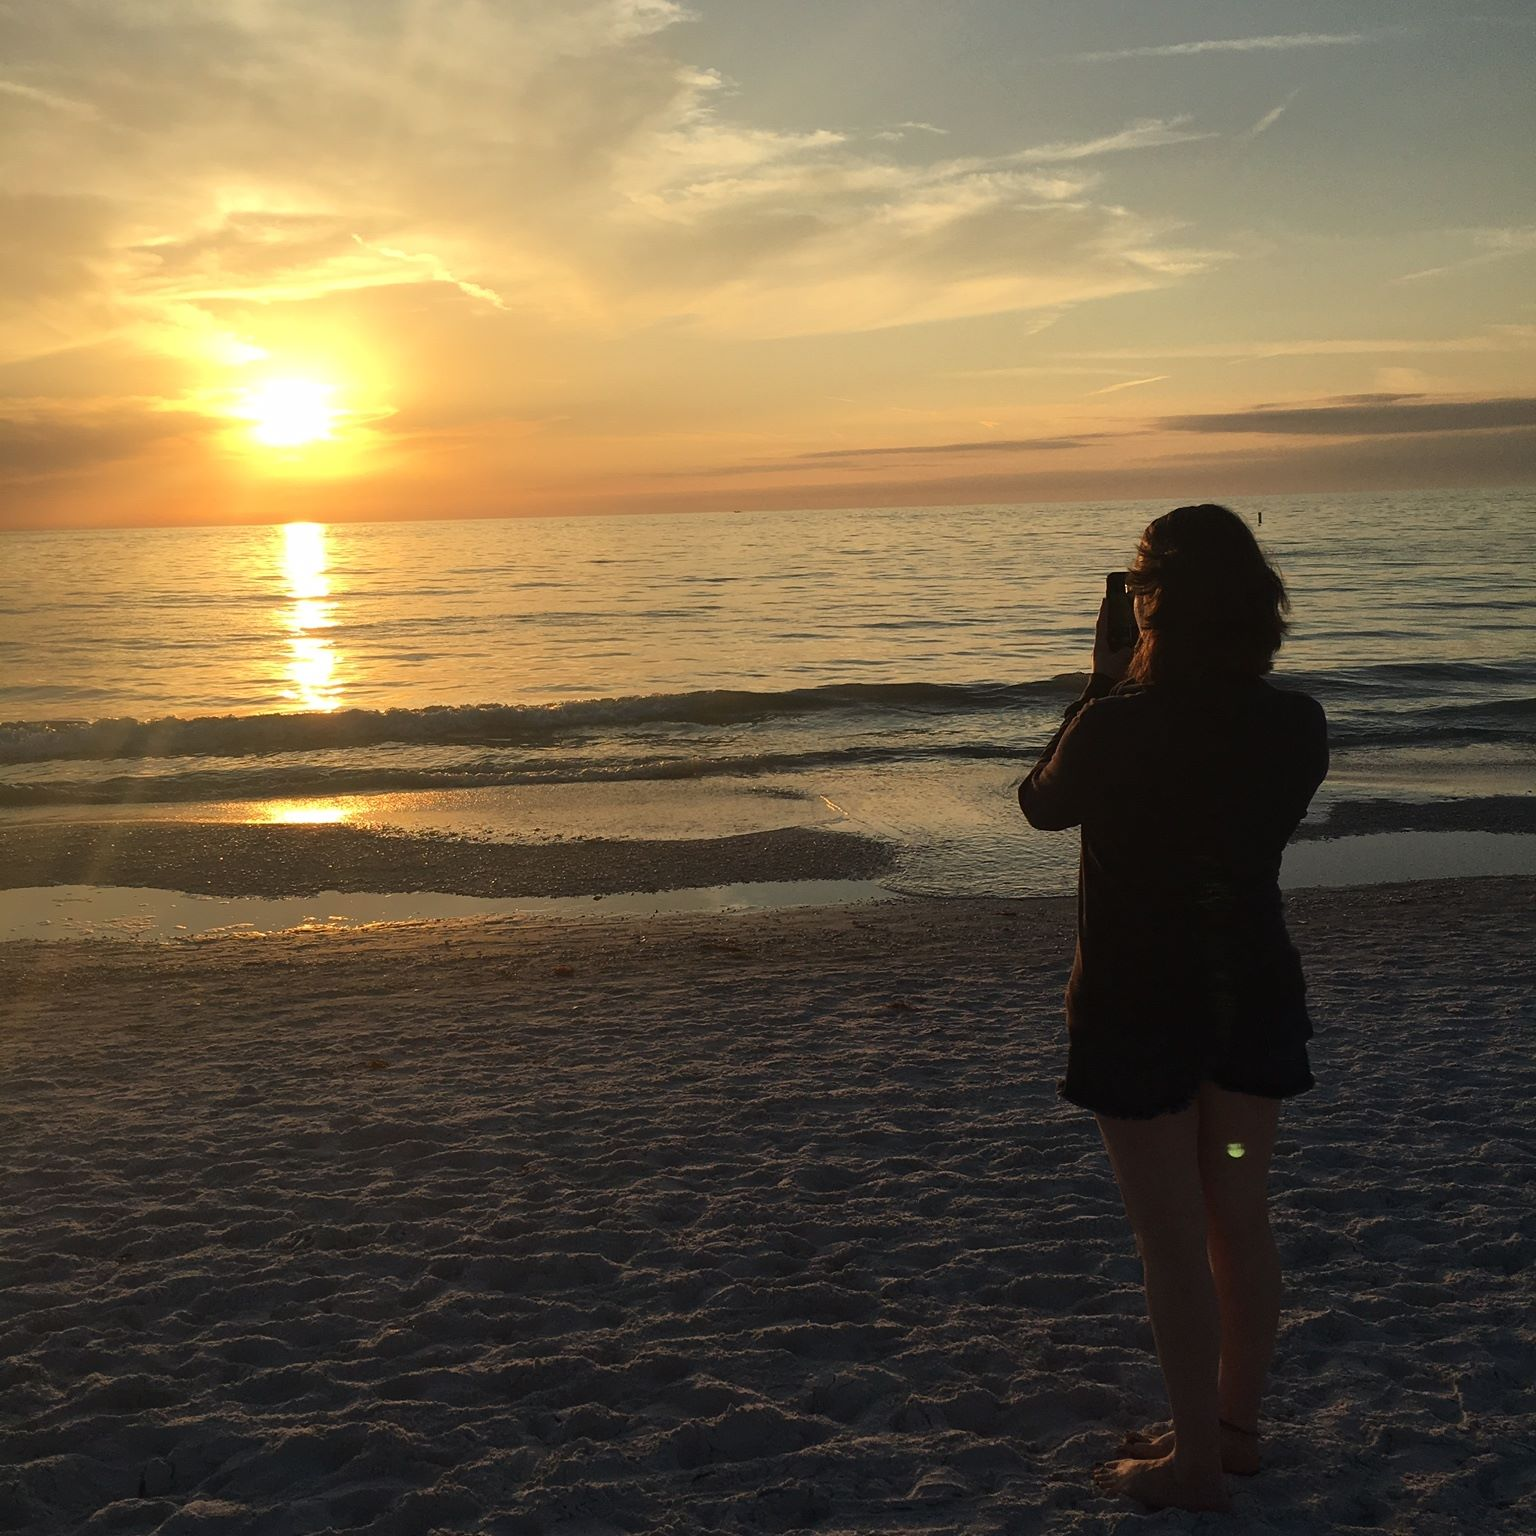 Beach Sunset Taking Picture in Florida